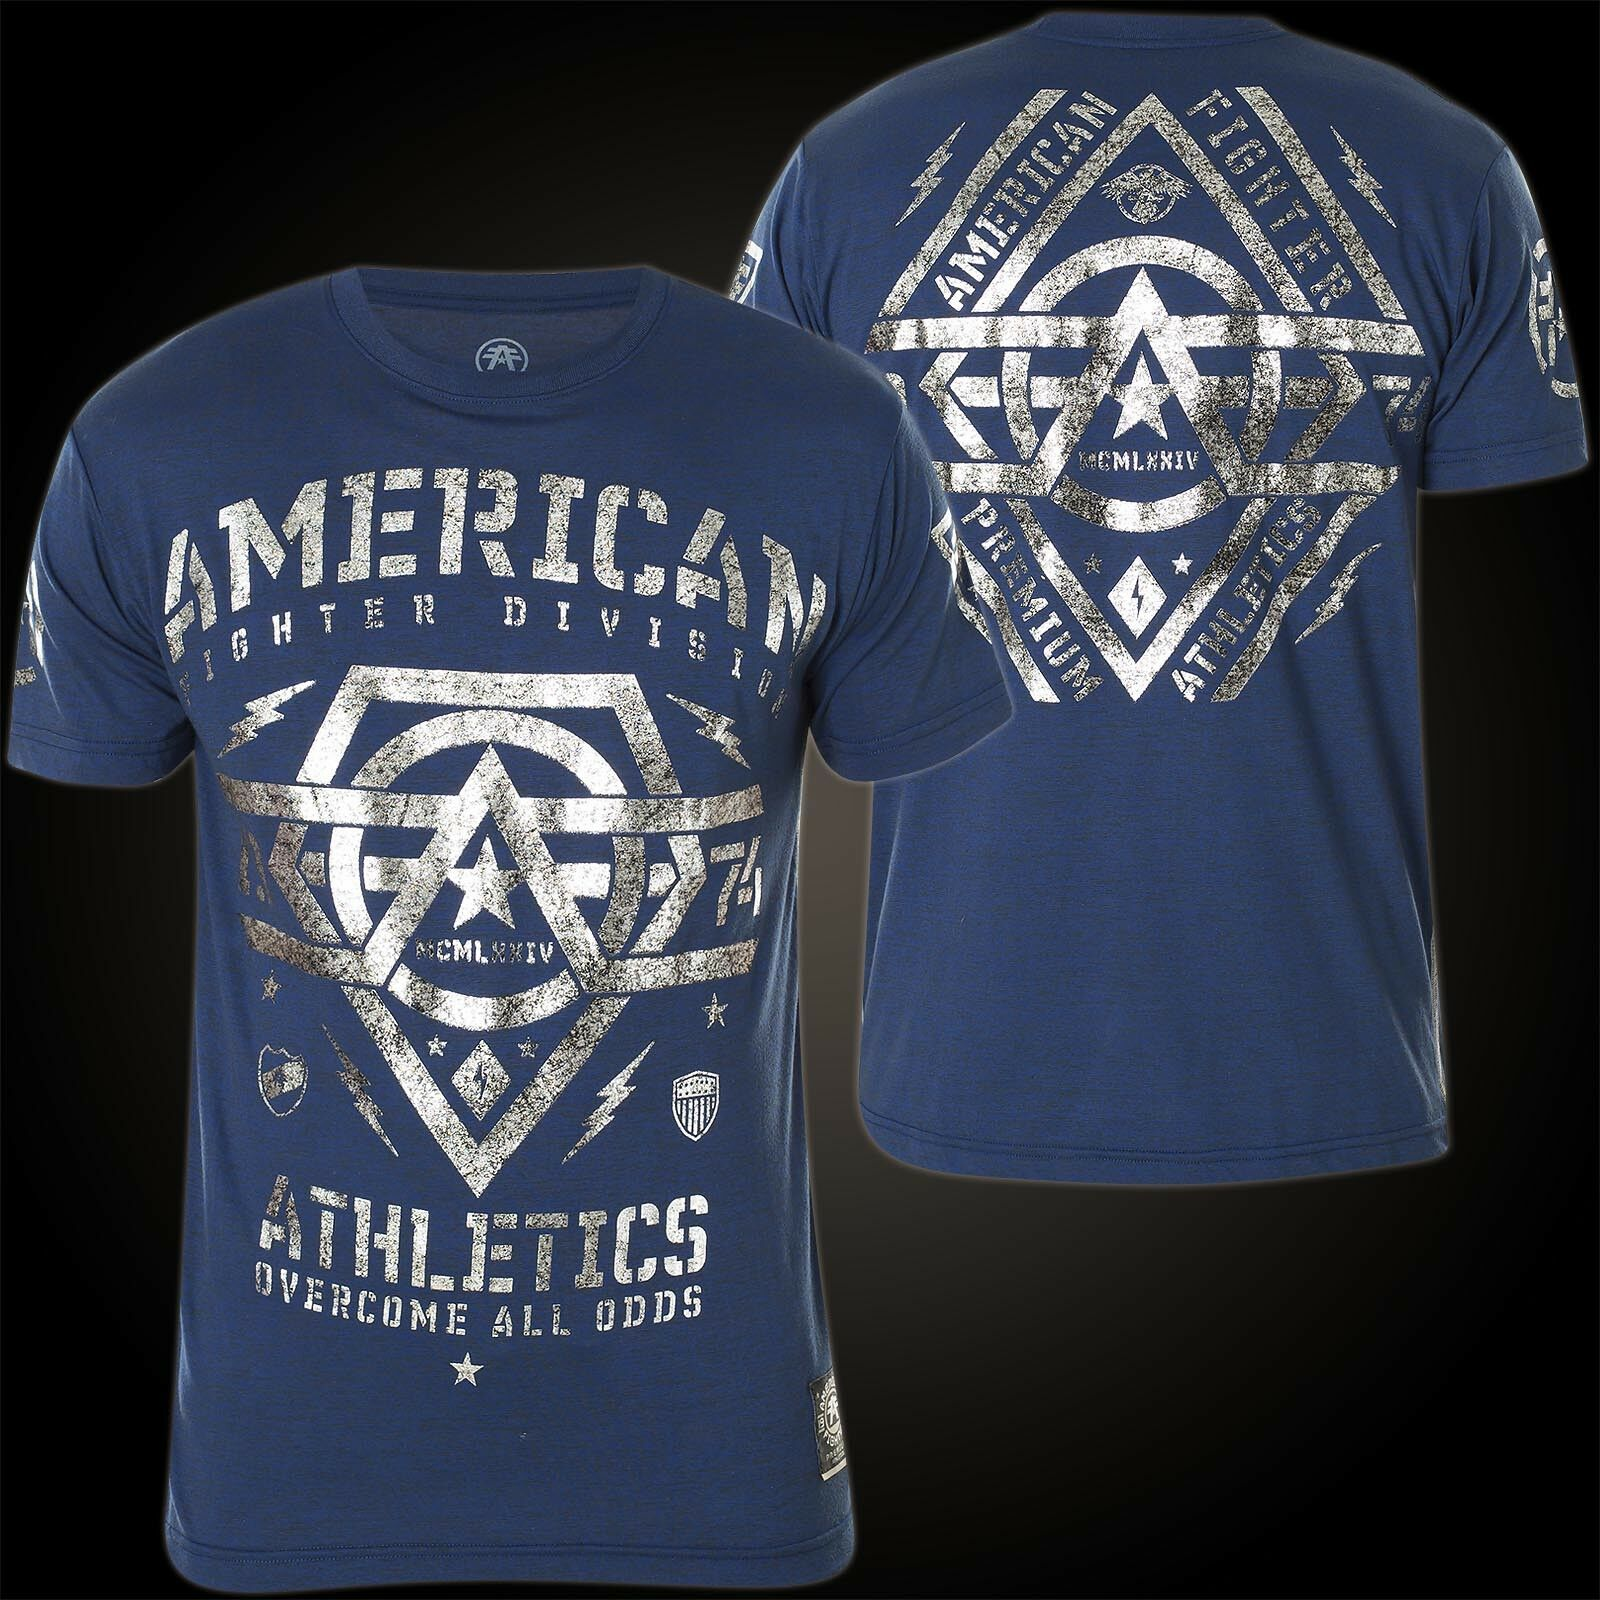 American Fighter by Affliction T-Shirt Westend bluee